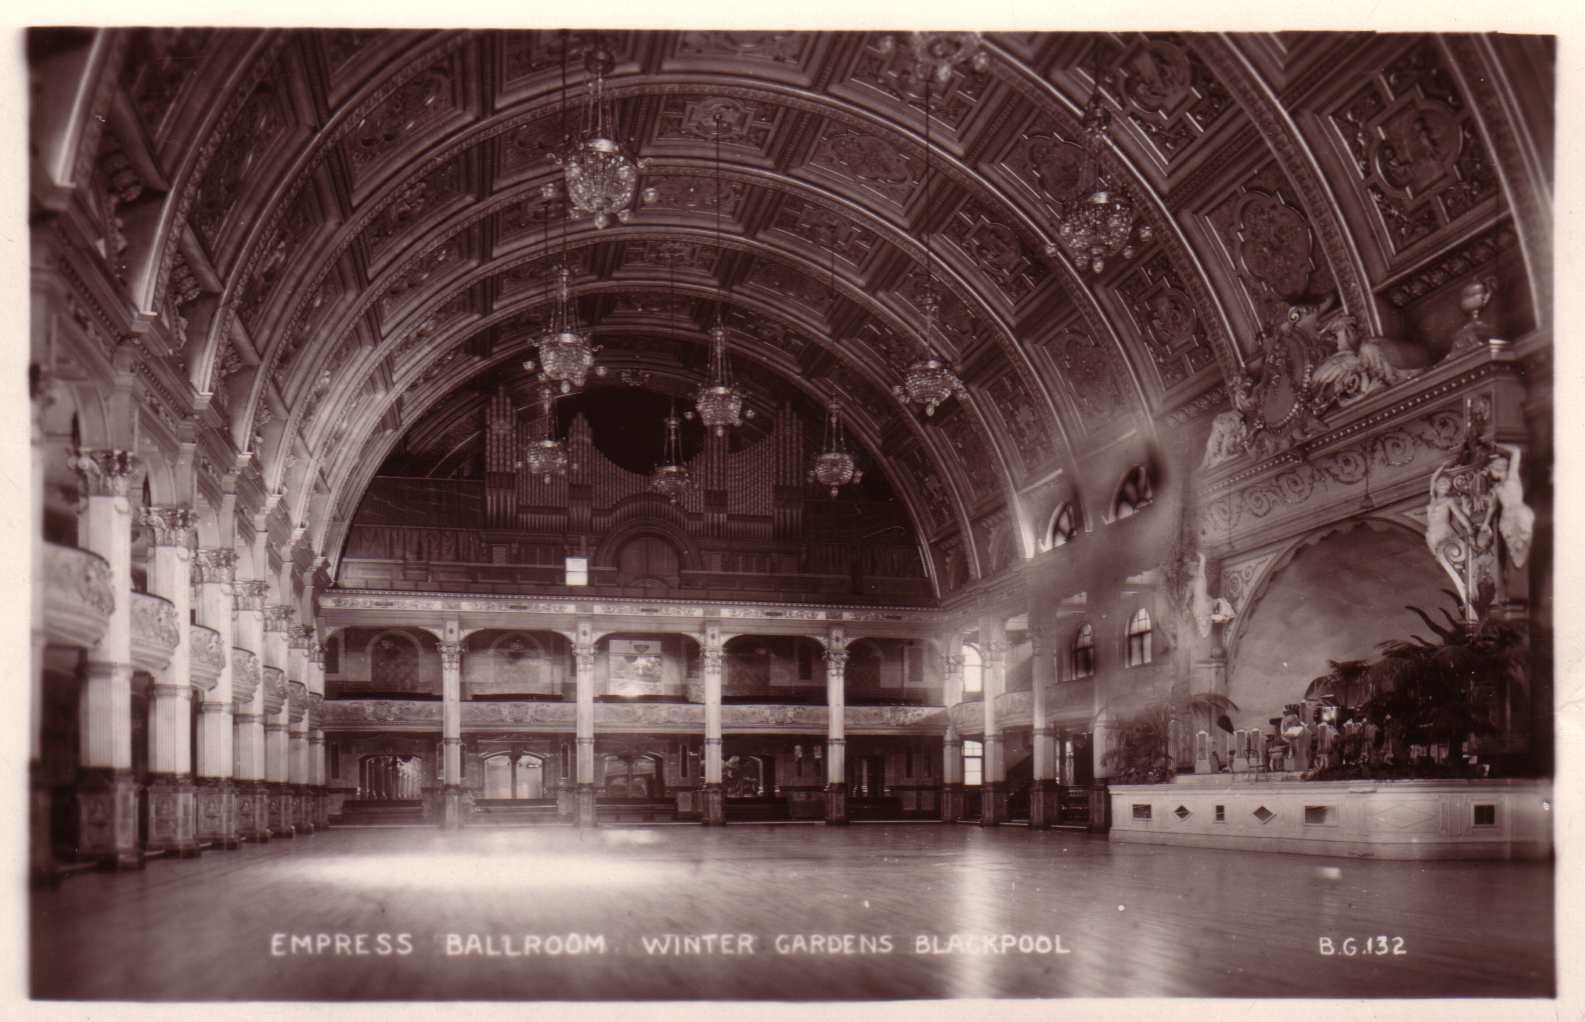 the empress ballroom in blackpool u0027s winter gardens showing the